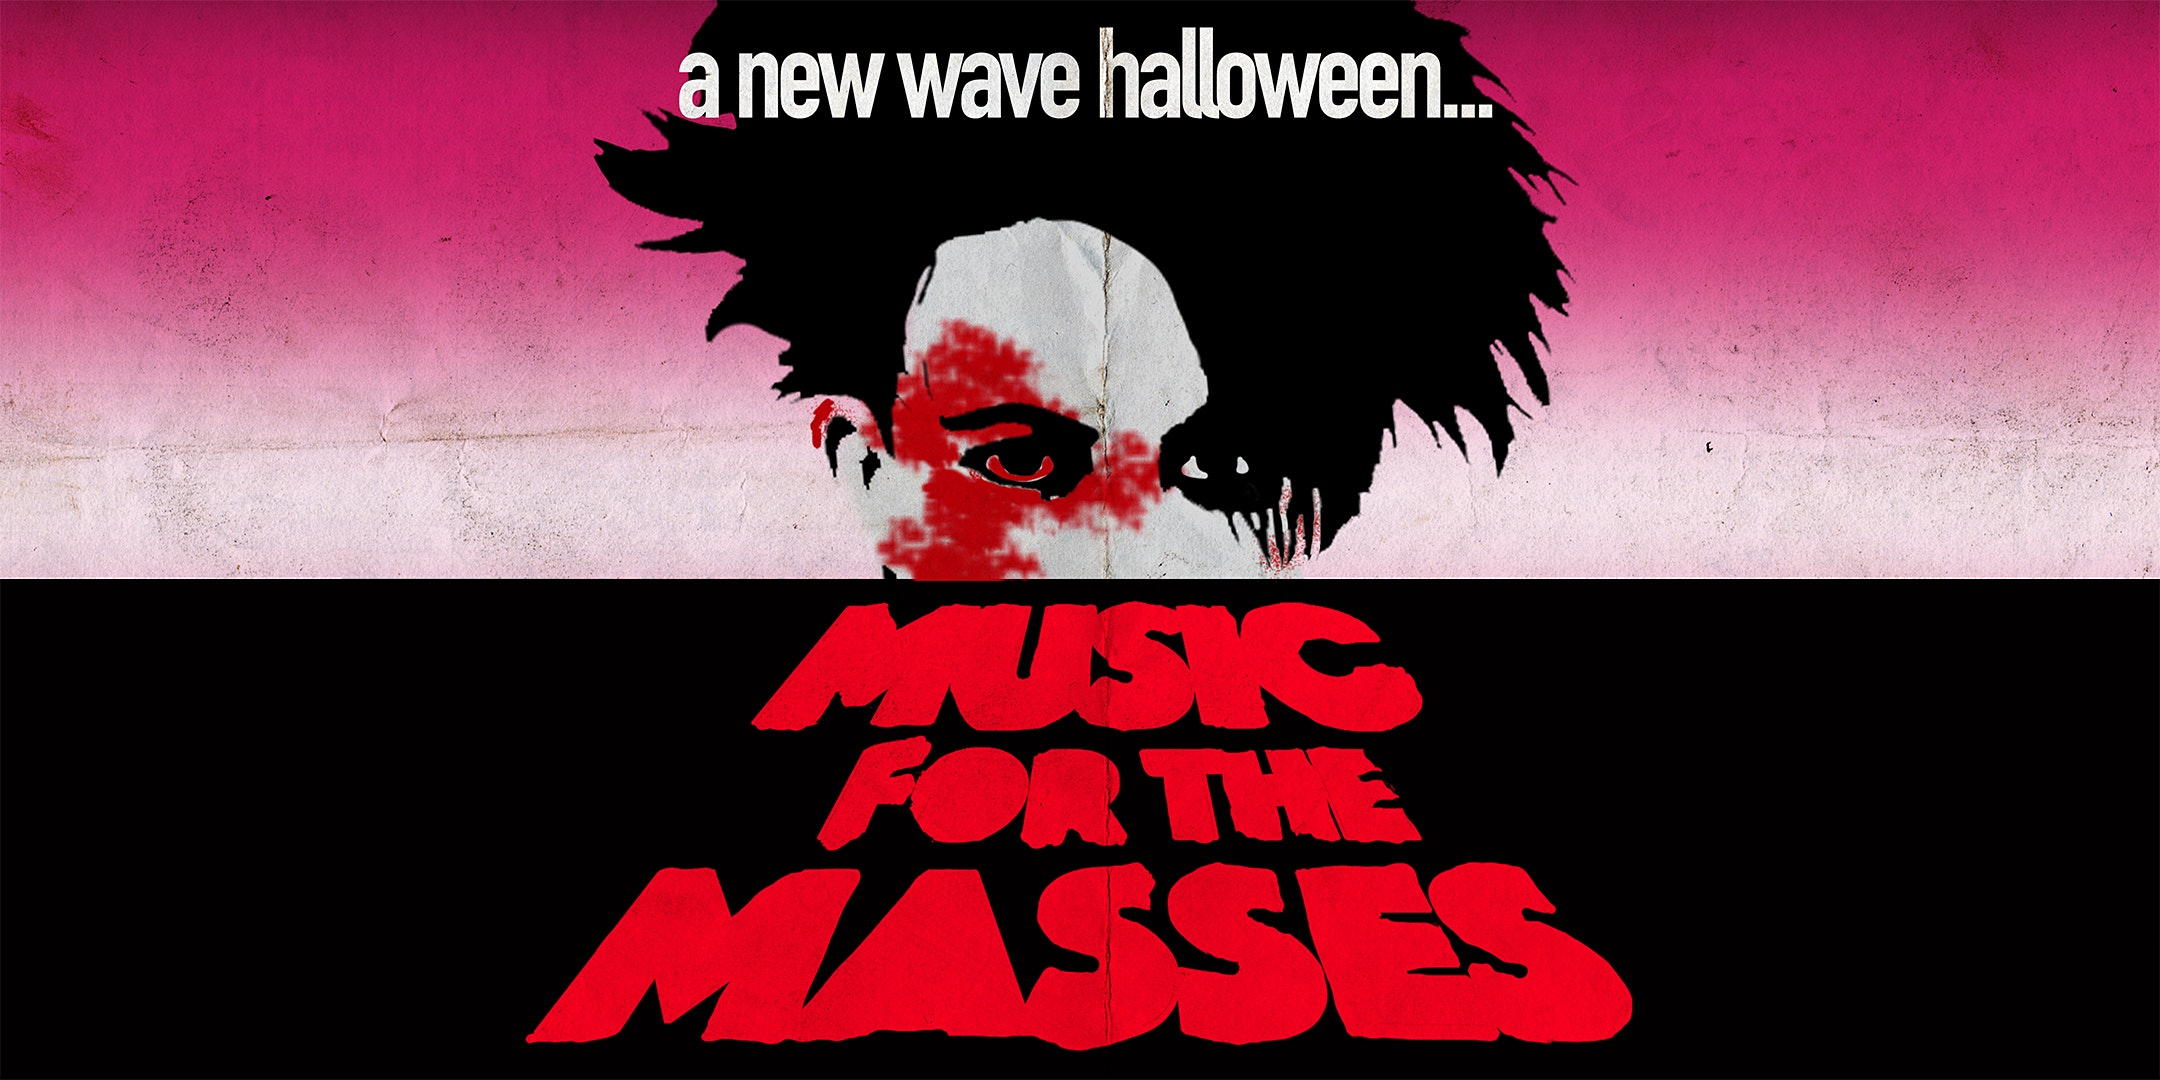 Music for the Masses - A New Wave Halloween